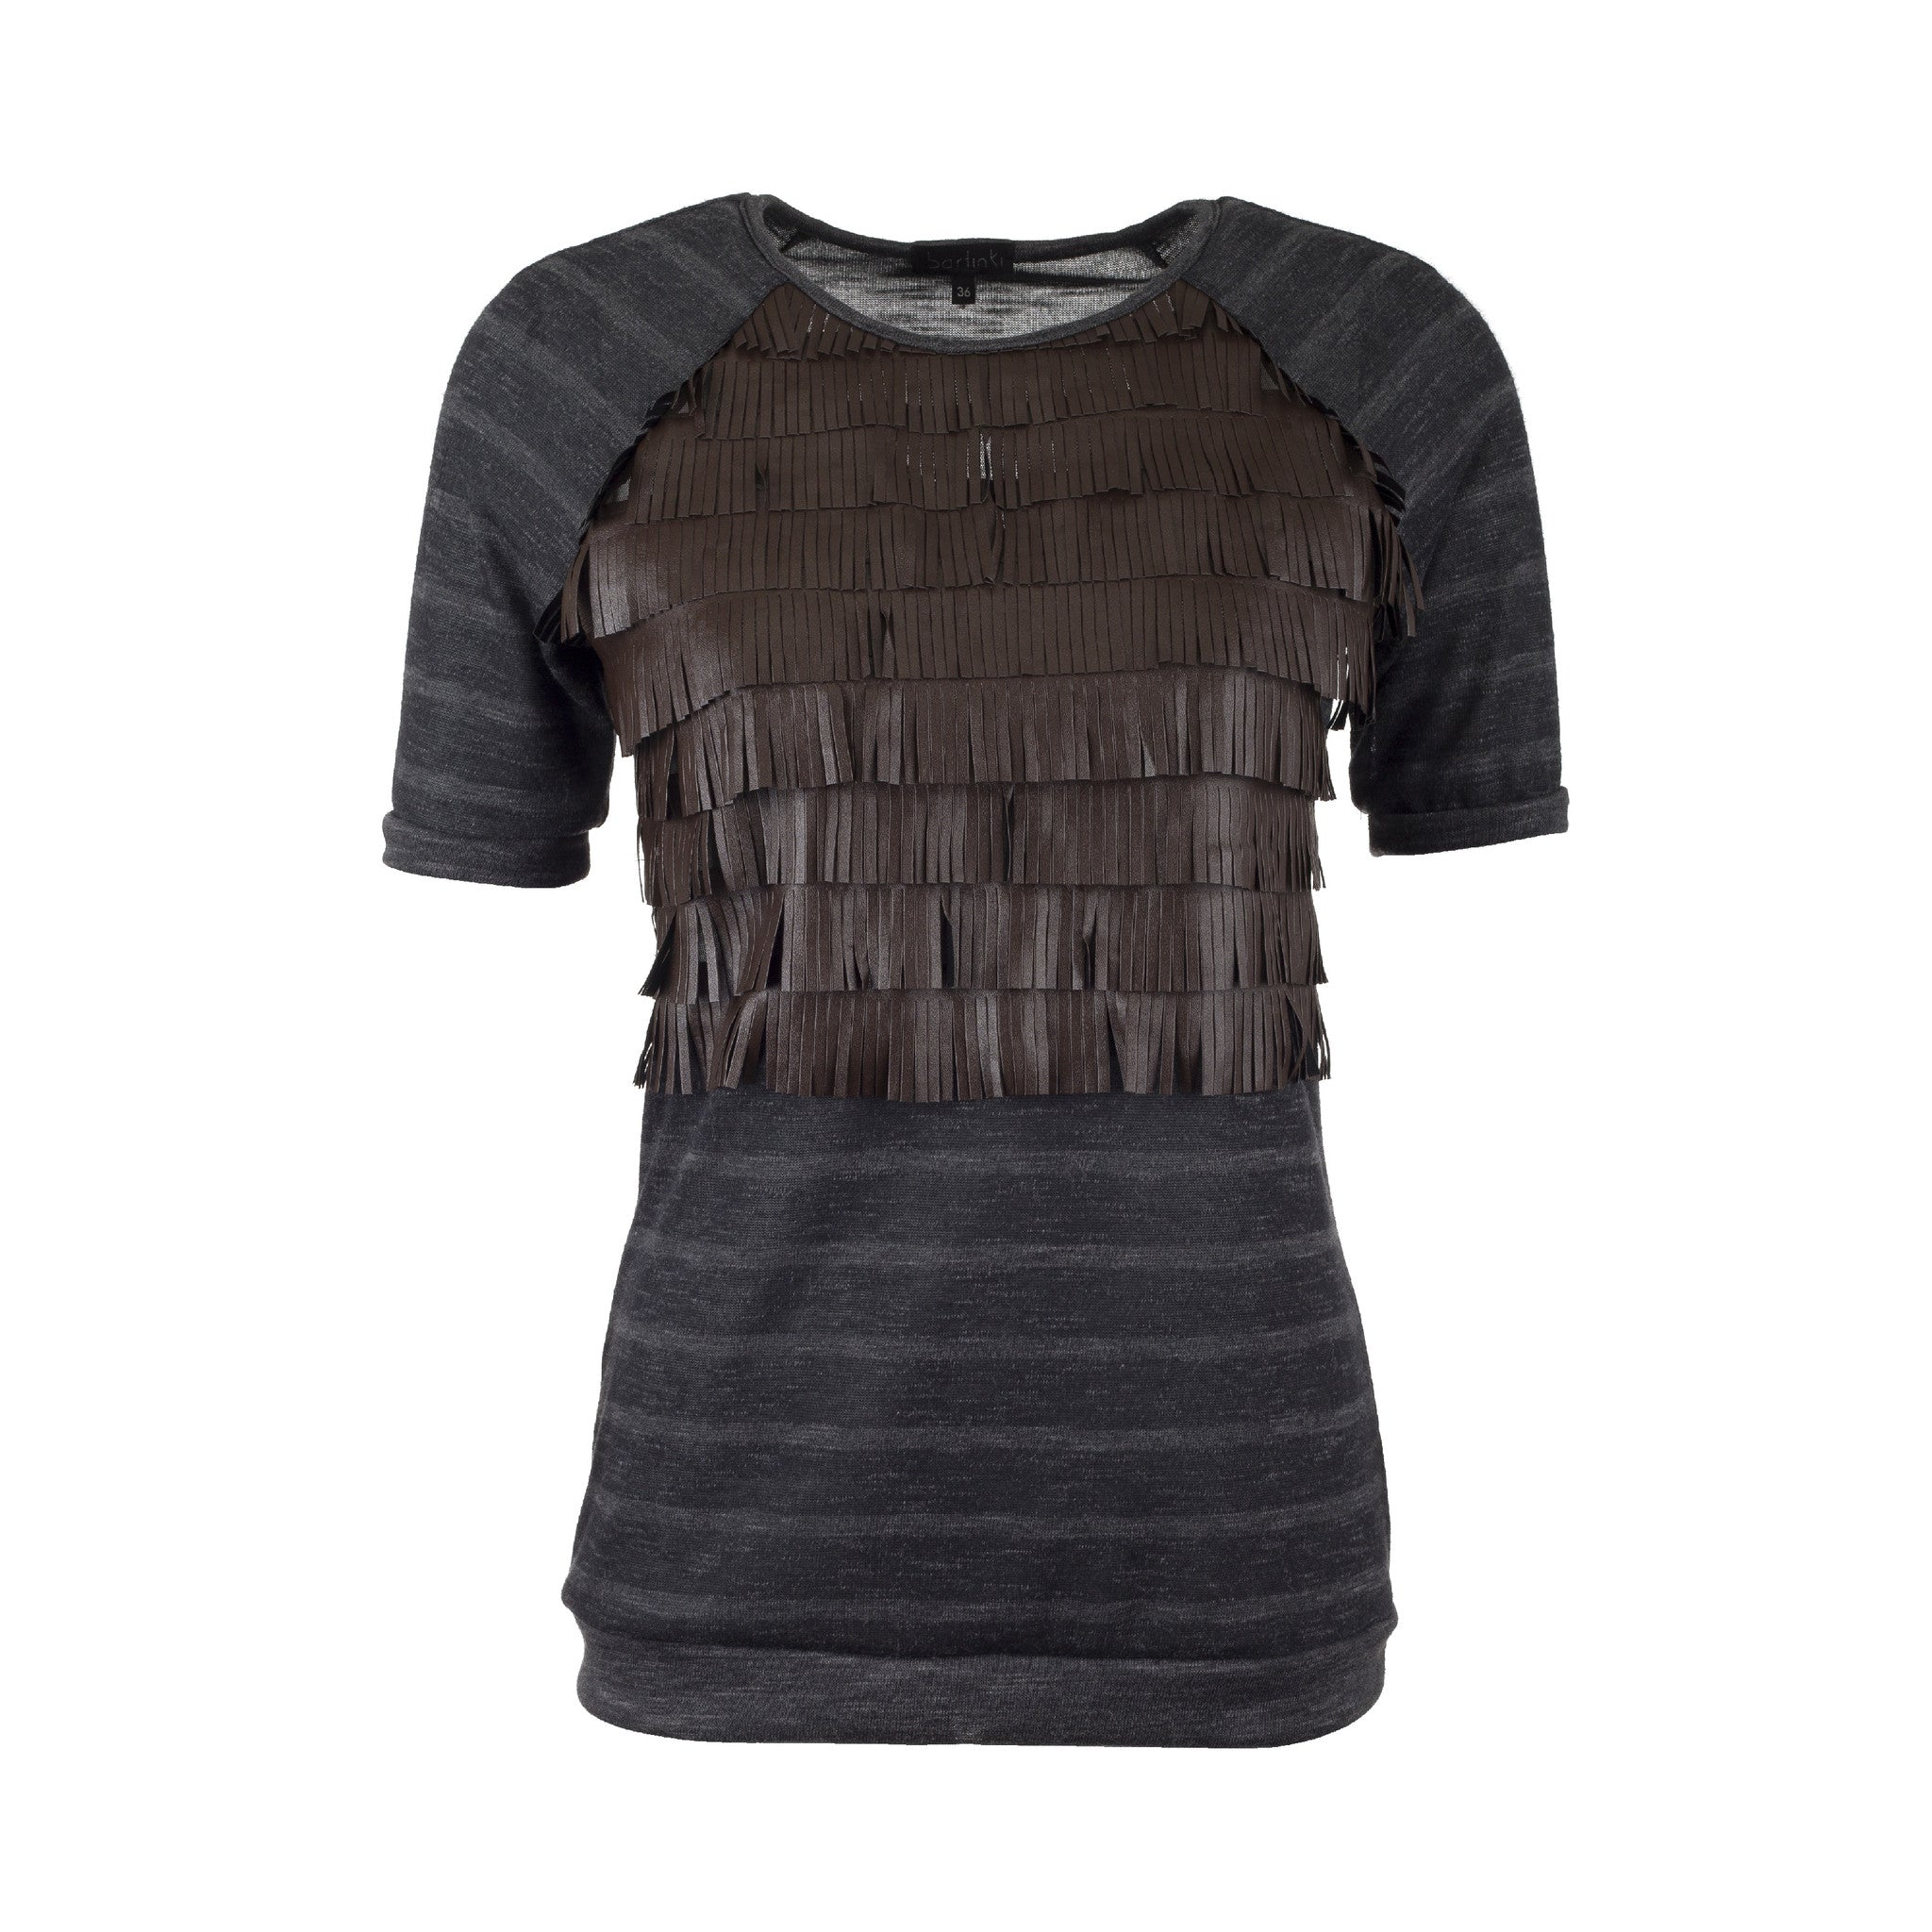 Top with fringe - short sleeve (made to order)